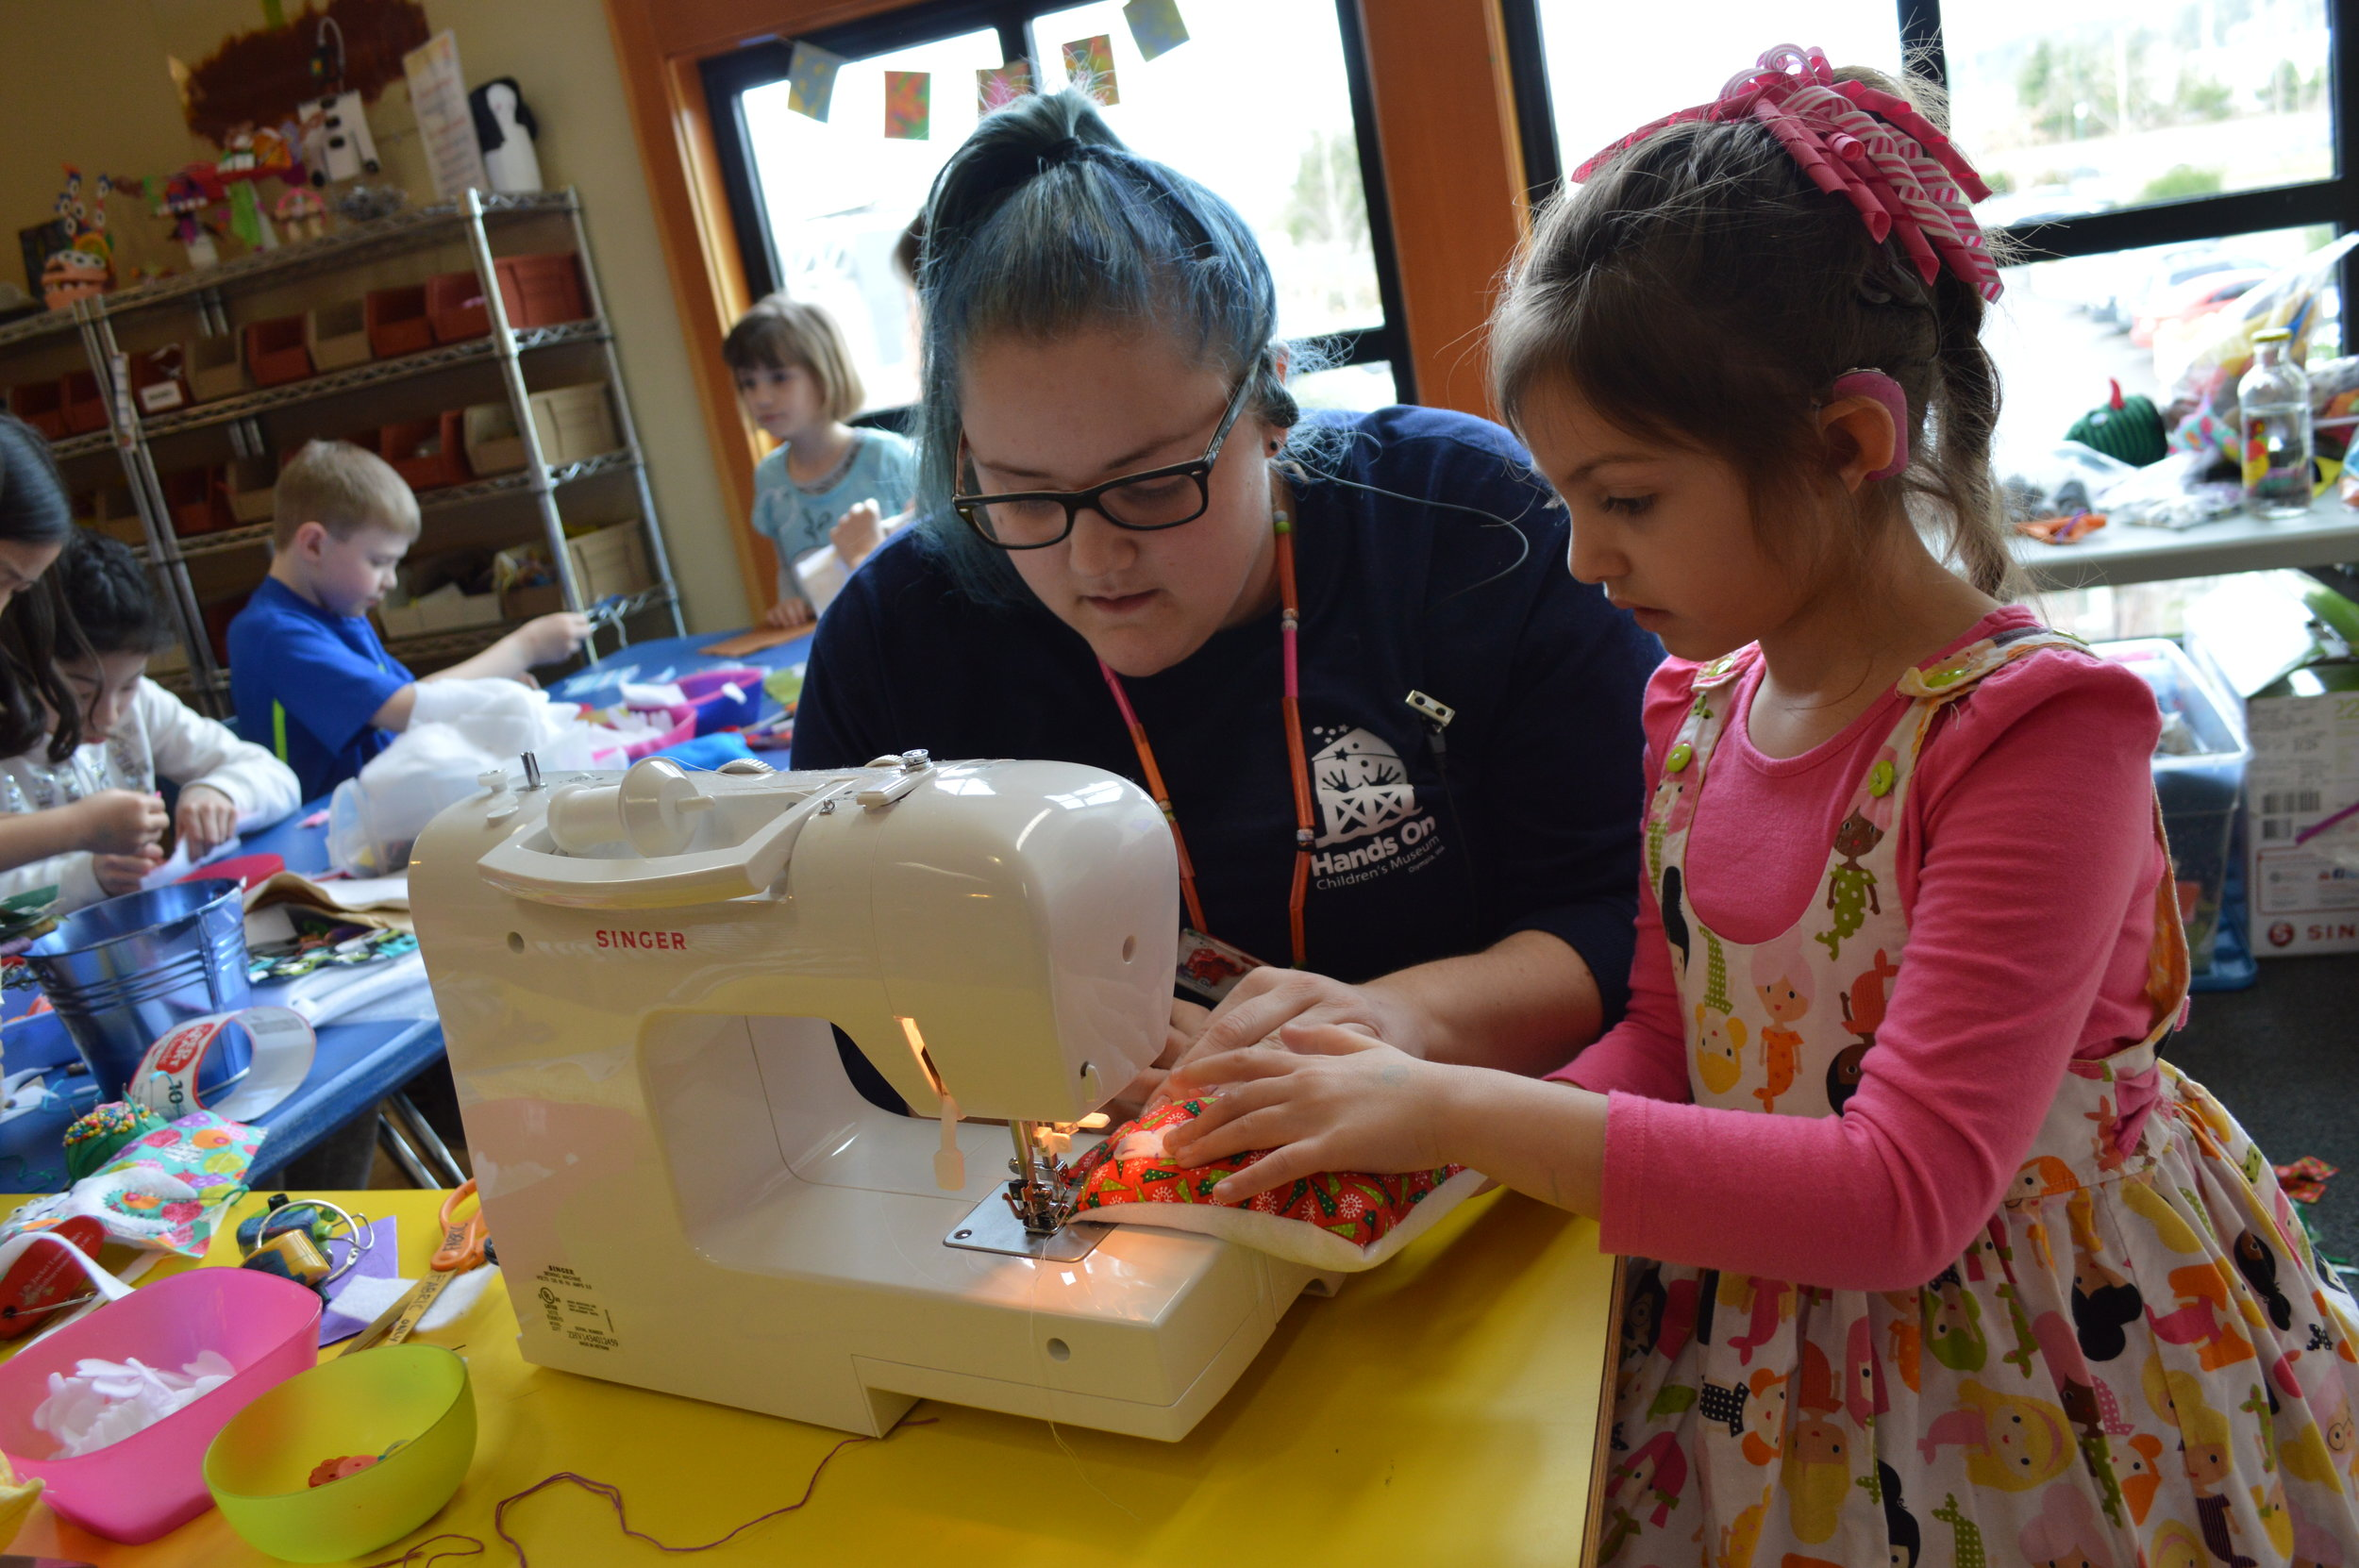 Kathryn's work has included projects with the Hands On Children's Museum in Olympia, where kids are given the chance to be Makers.